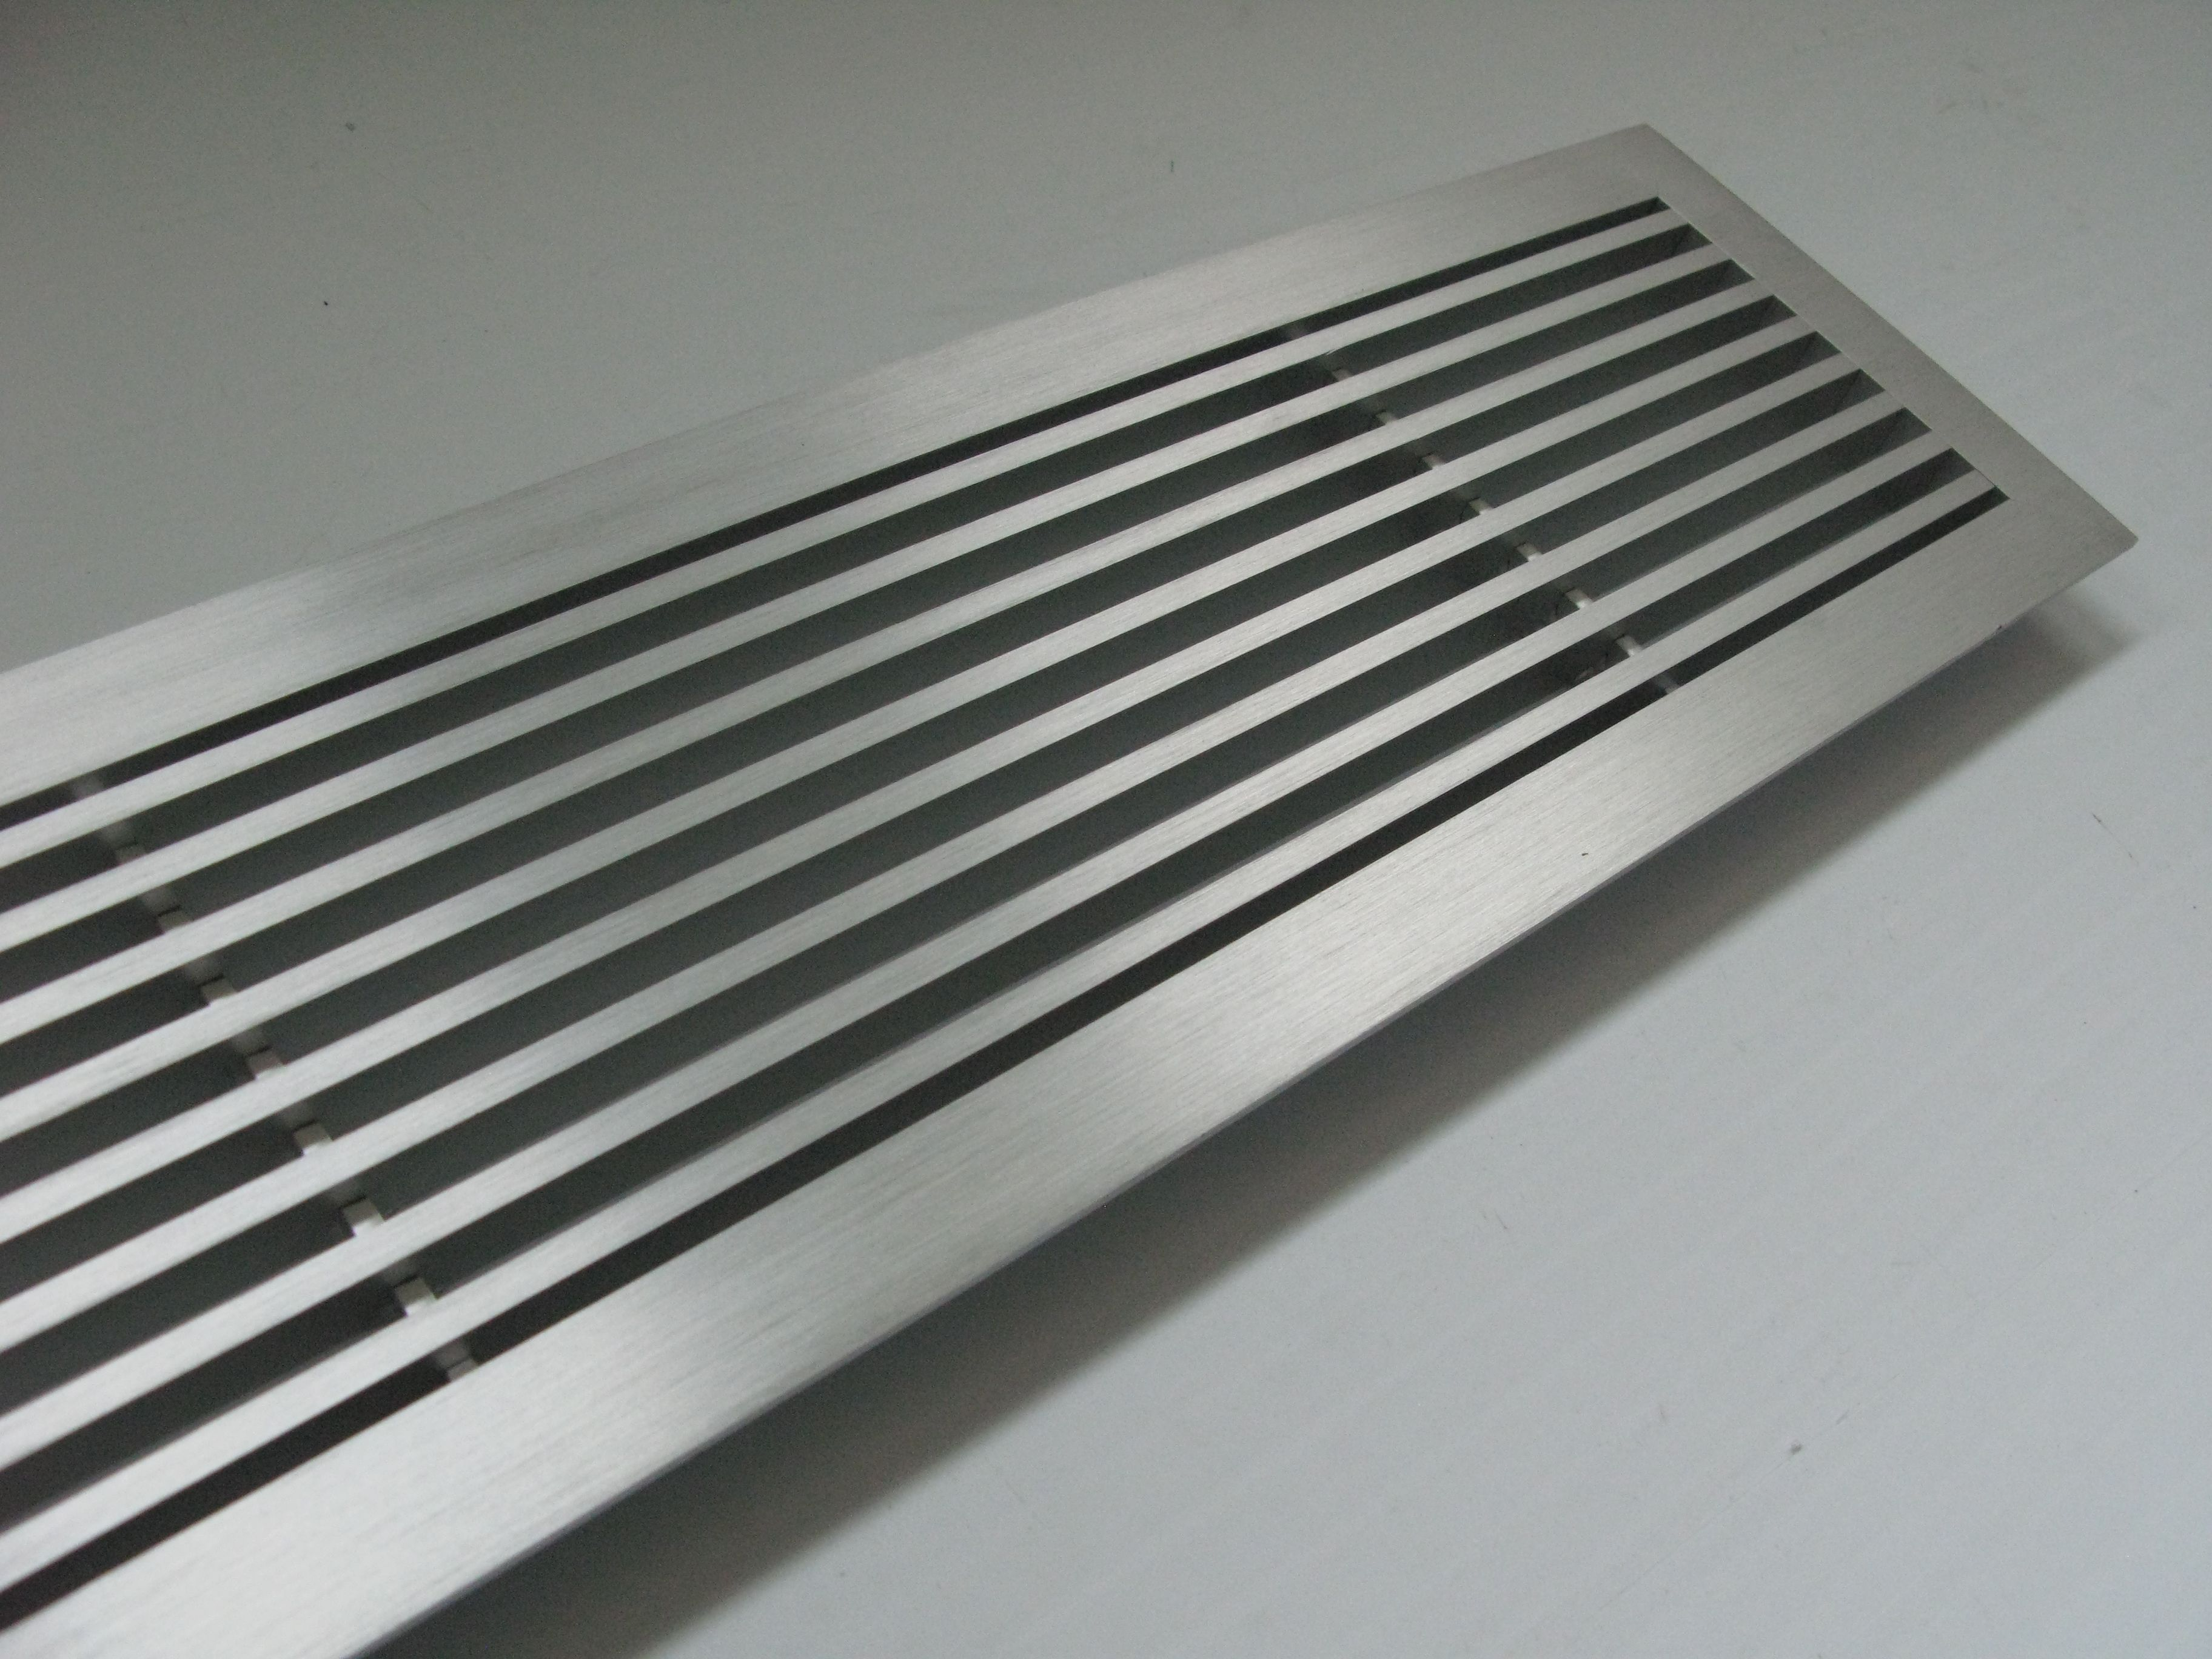 A Nice Metal Floor Grille With A Flange